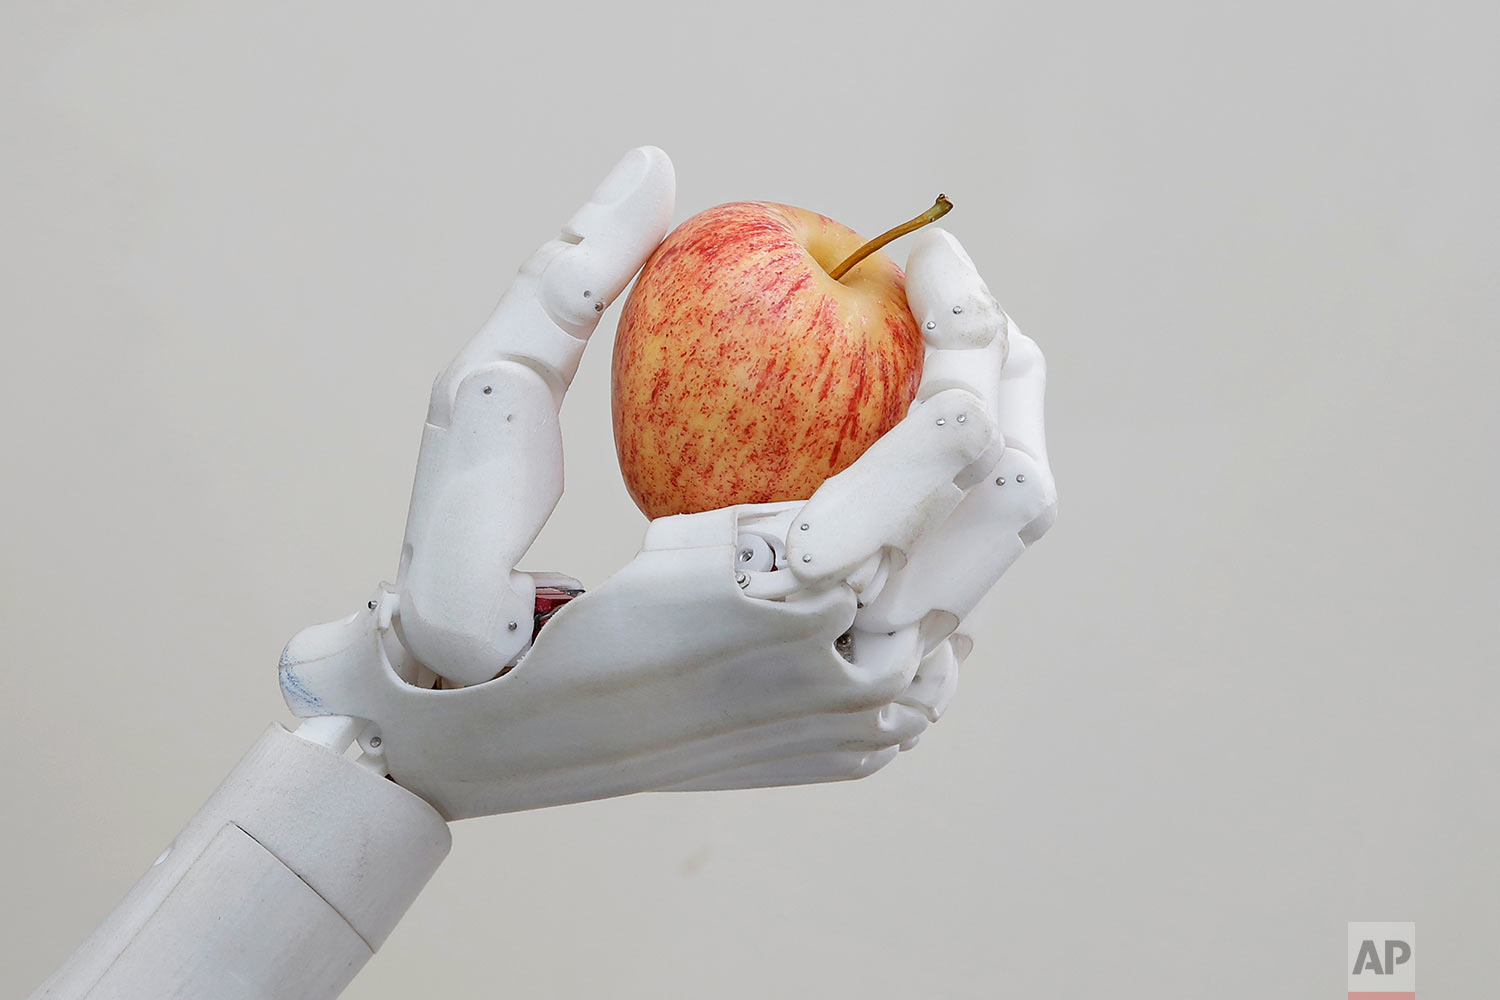 In this Sept. 28, 2017, photo, Hanson Robotics' flagship robot Sophia, a lifelike robot powered by artificial intelligence, holds an apple in Hong Kong. (AP Photo/Kin Cheung) |  See these photos on AP Images